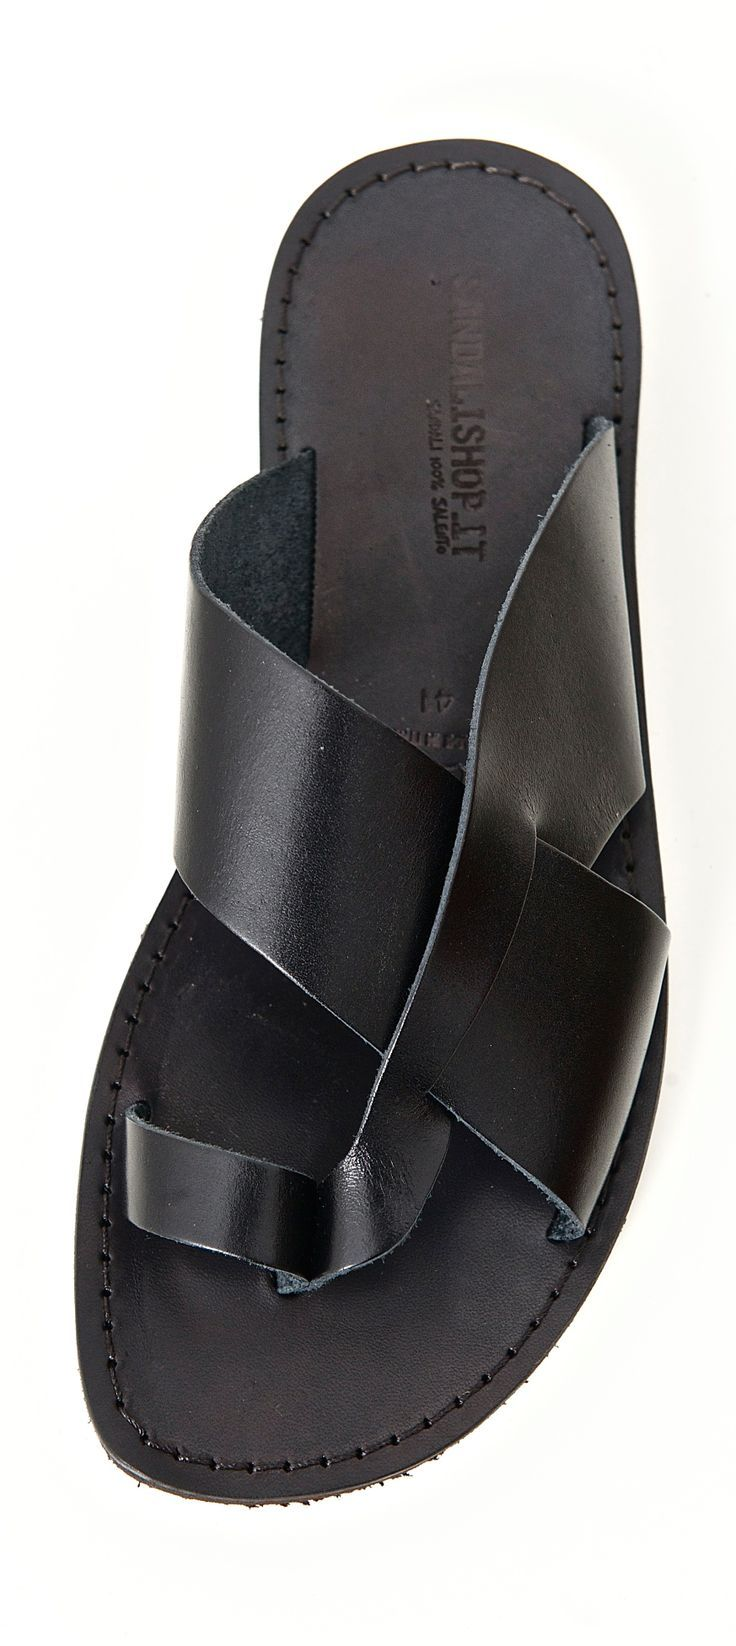 mens leather sandals - mens shoes online purchase, boot shoes mens, mens shoes size 15